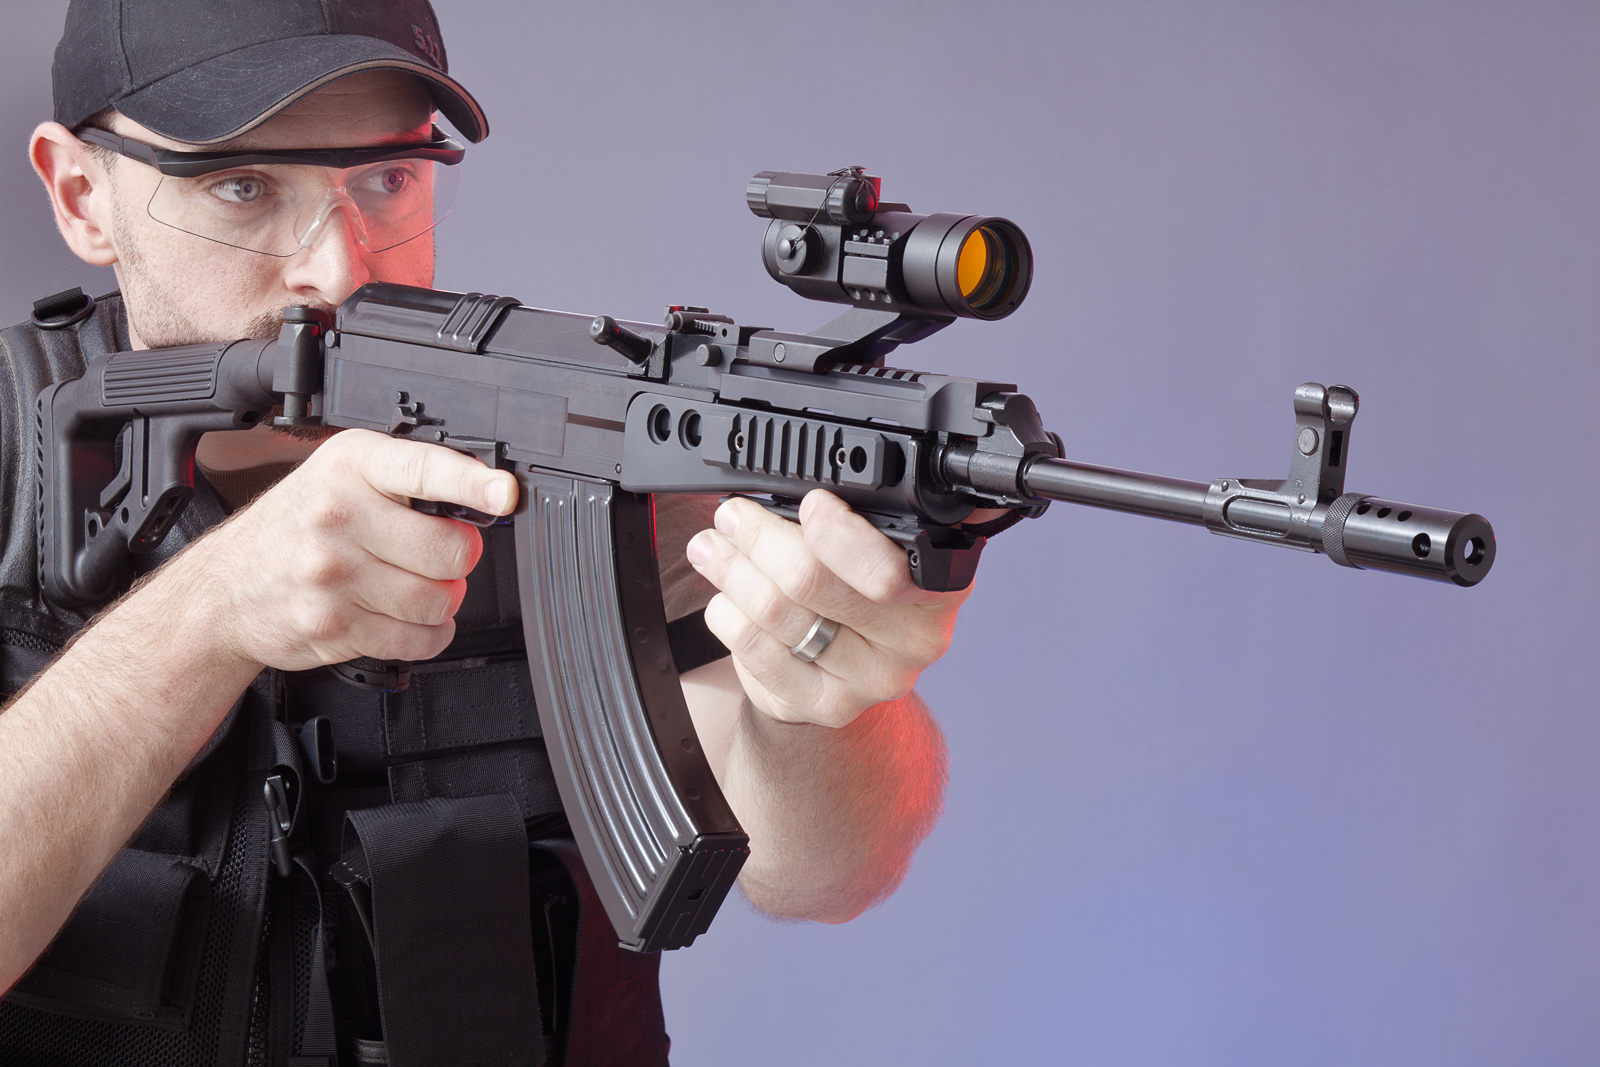 Czech Small Arms Sa Vz 58 Sporter Rifles News HD Wallpapers Download free images and photos [musssic.tk]